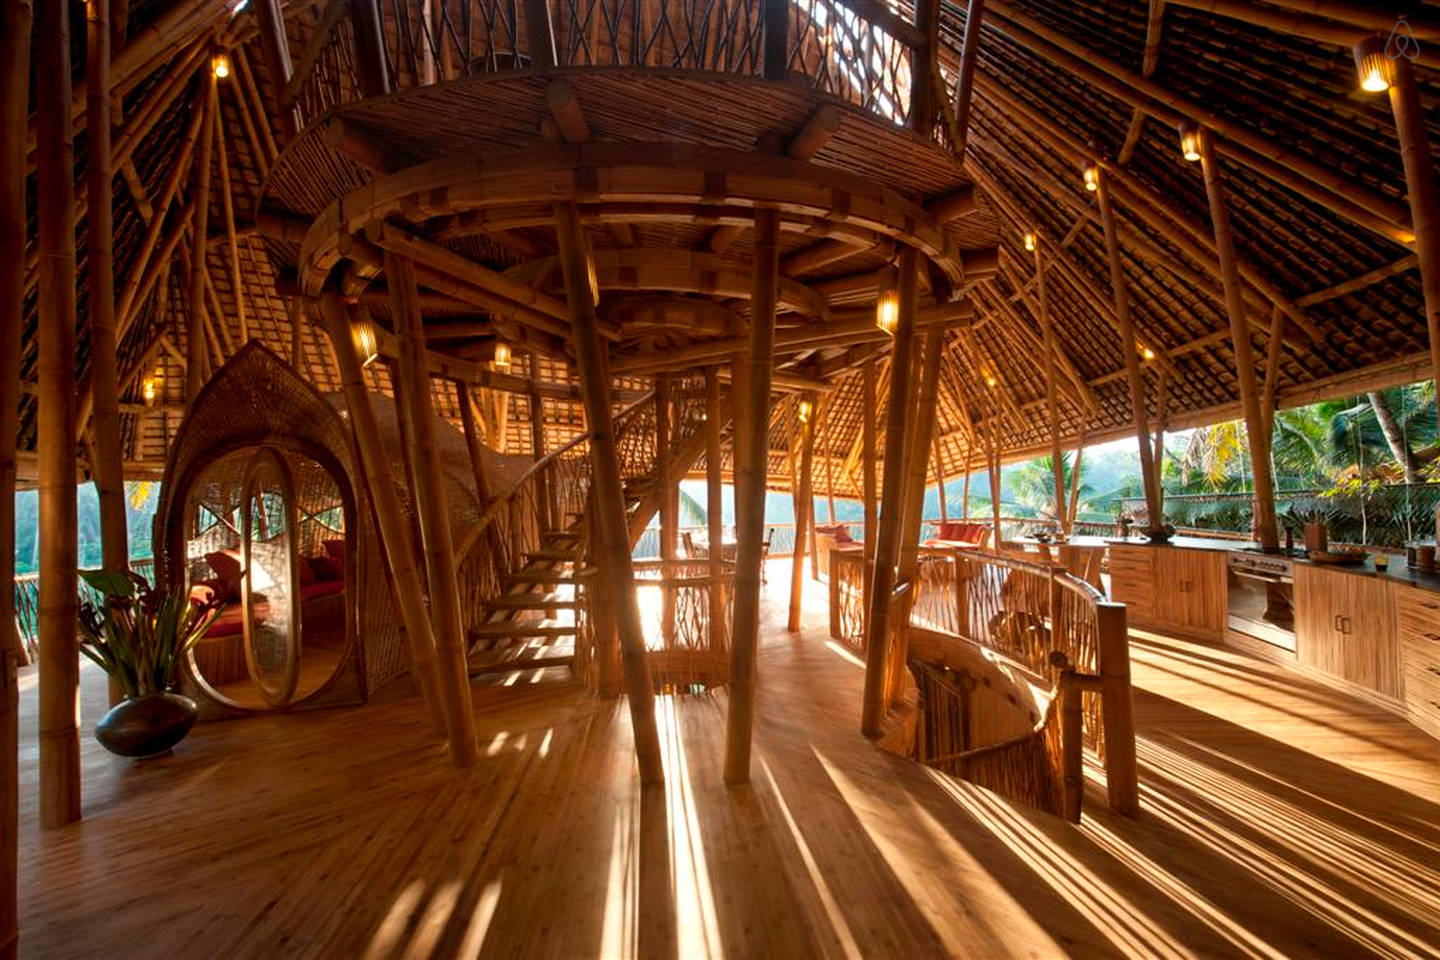 All Bamboo House in Bali, Indonesia (1)